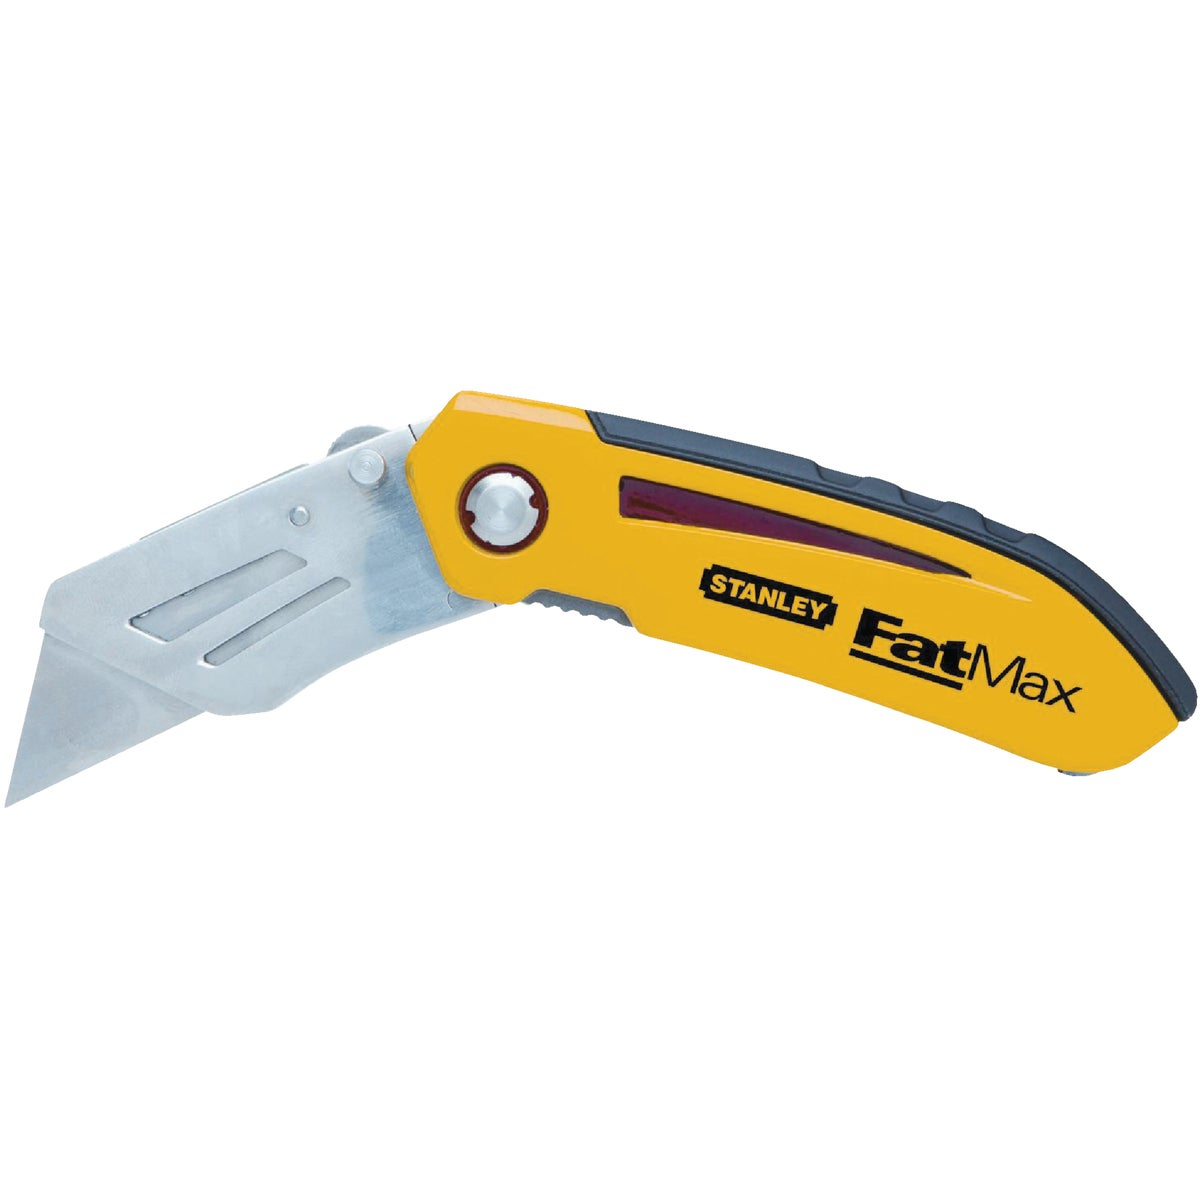 Stanley 10-825 FatMax Retractable Utility Knife at Sears.com